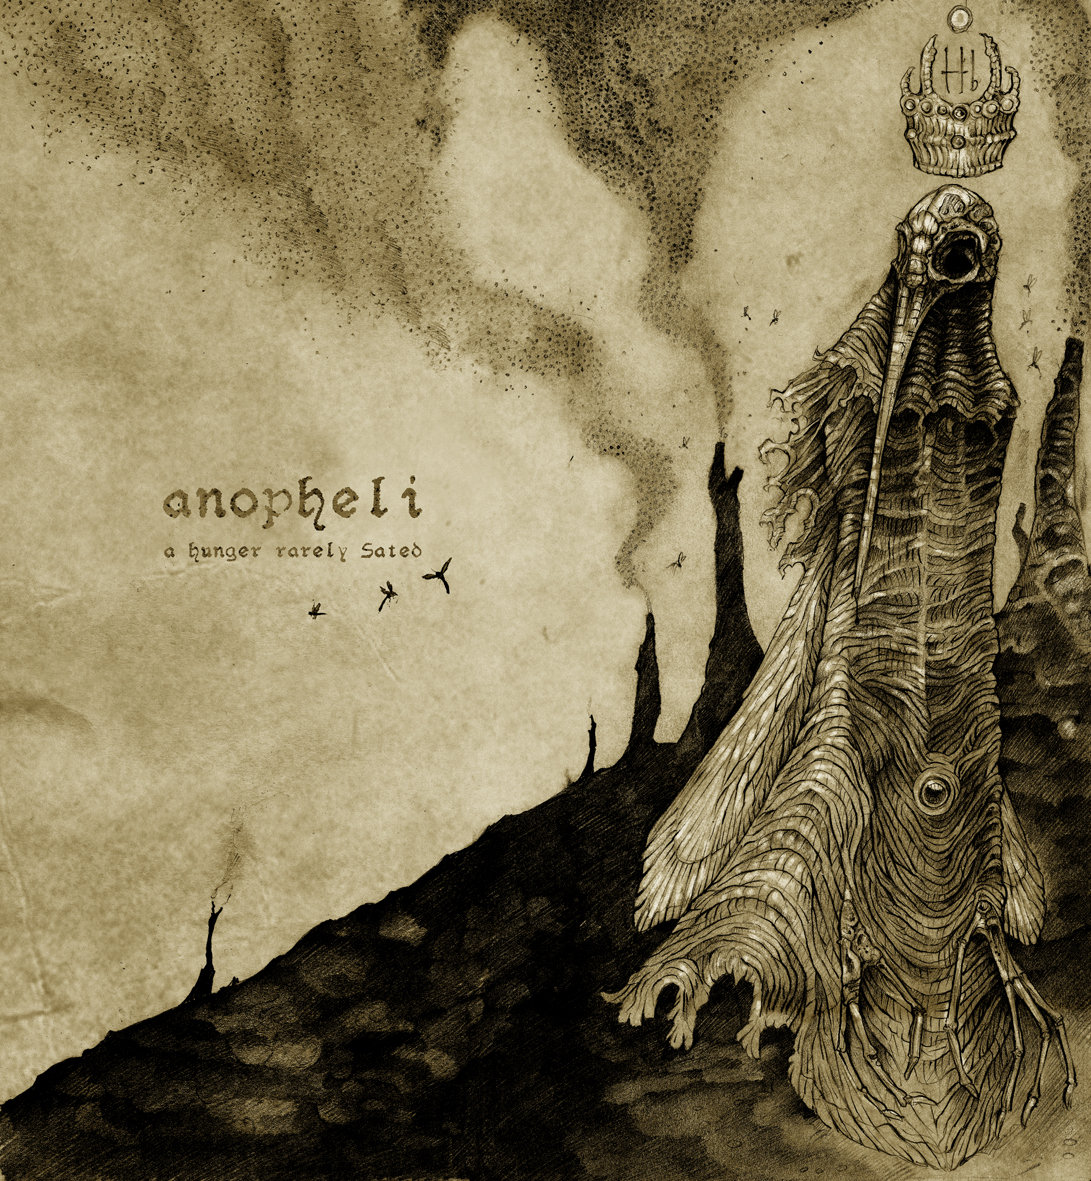 Anopheli - A Hunger Rarely Sated @ 'A Hunger Rarely Sated' album (metal, oakland)